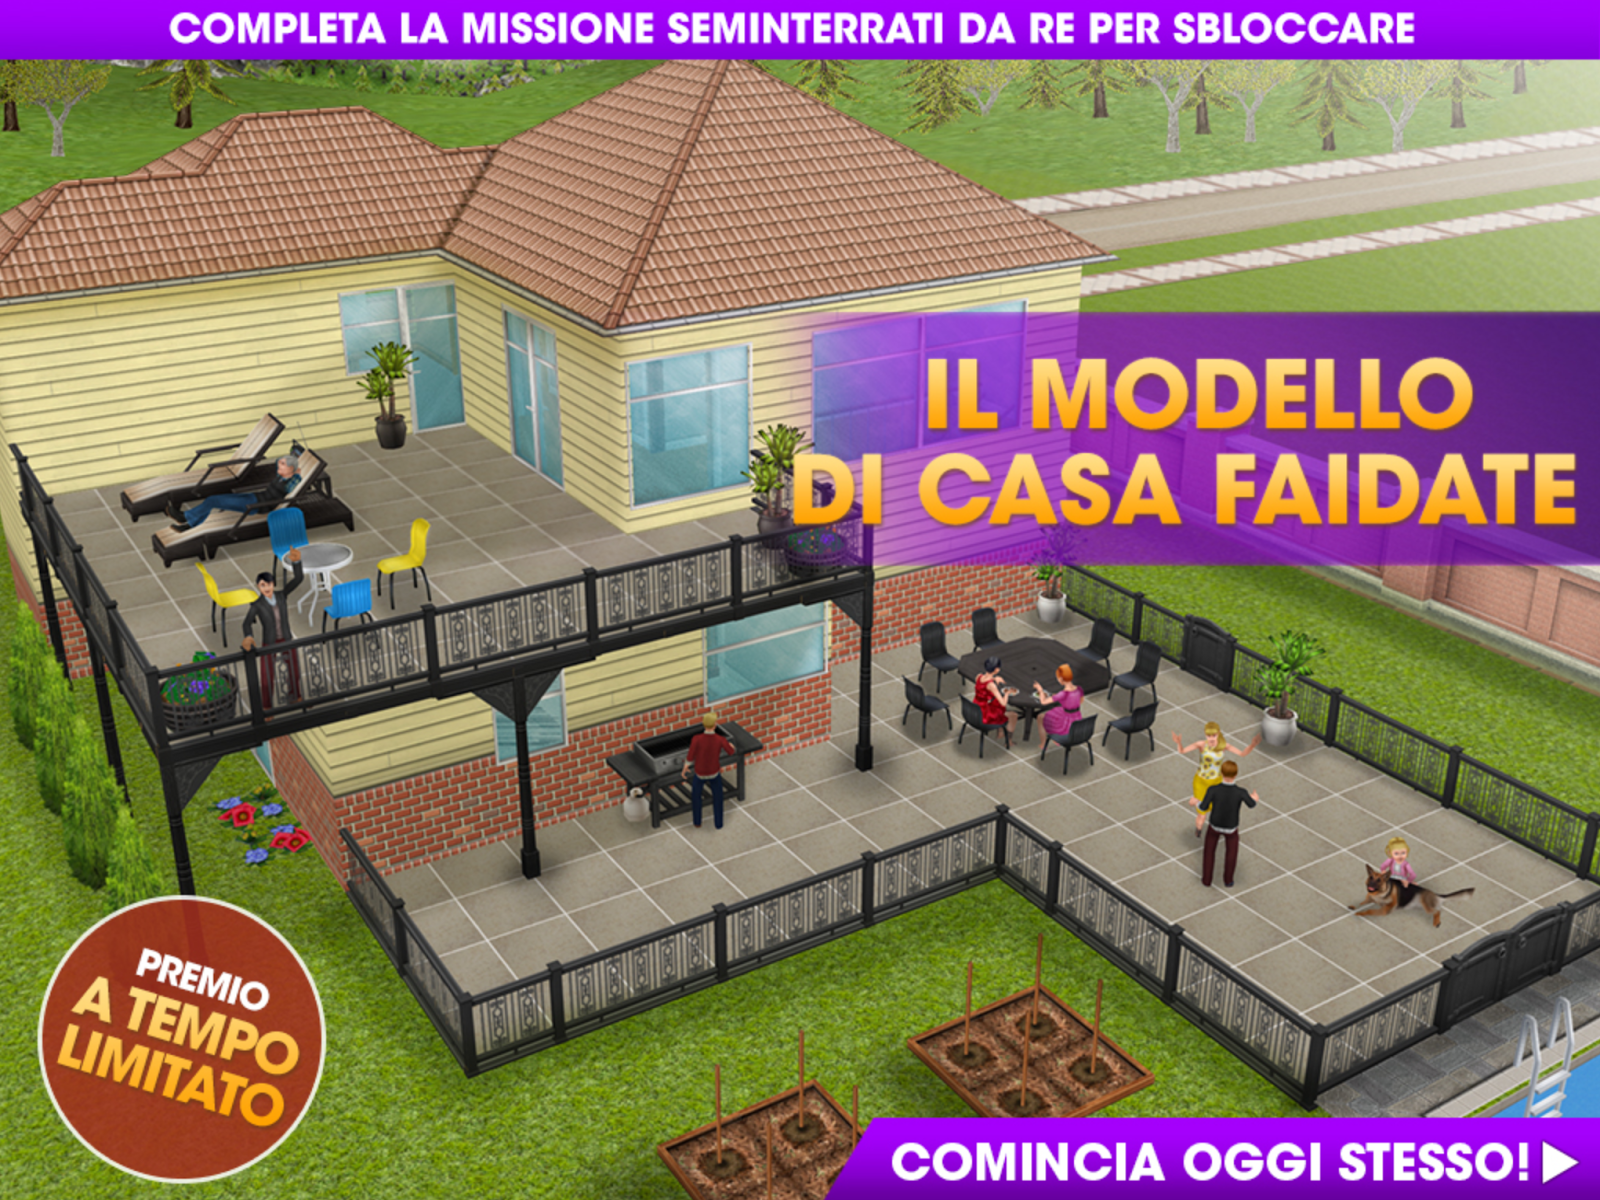 The sims freeplay it case faidate seminterrati da re for Armadio seminterrato non finito